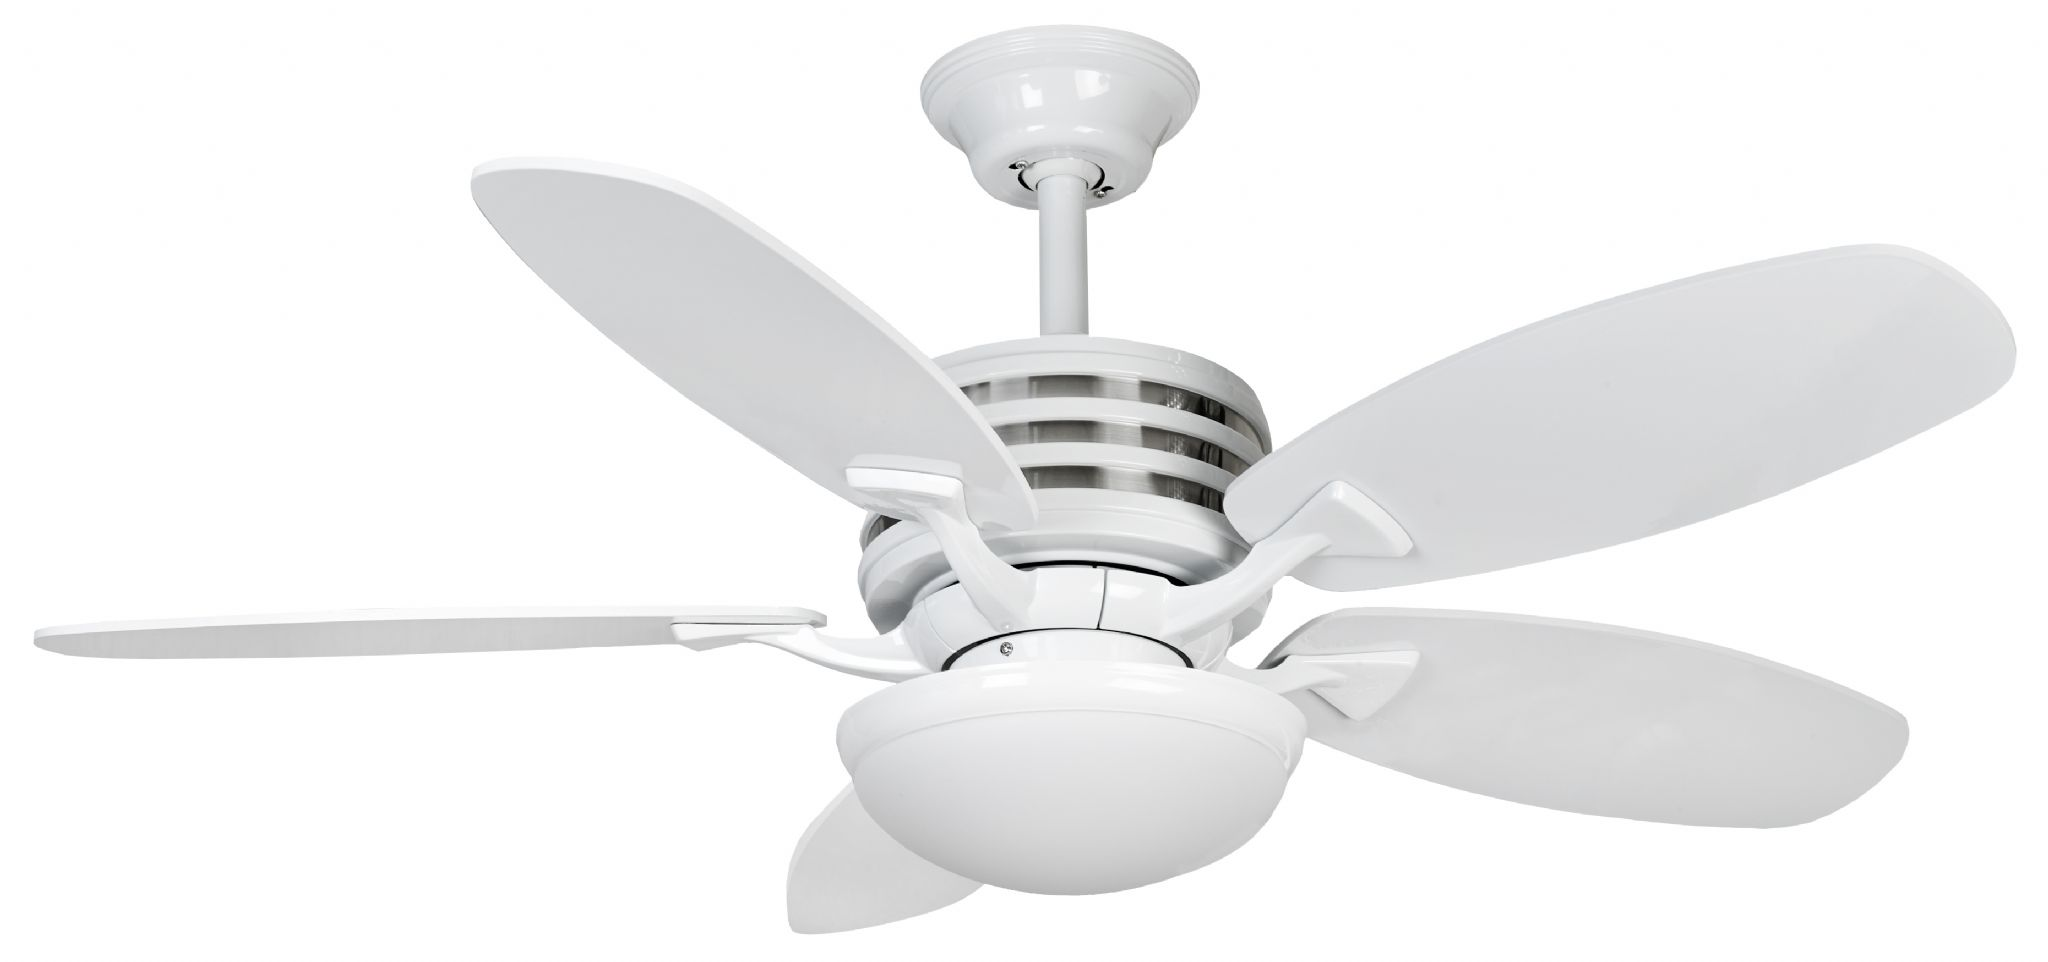 Fantasia Omega Cs Elite 44 White Ceiling Fan Remote Light